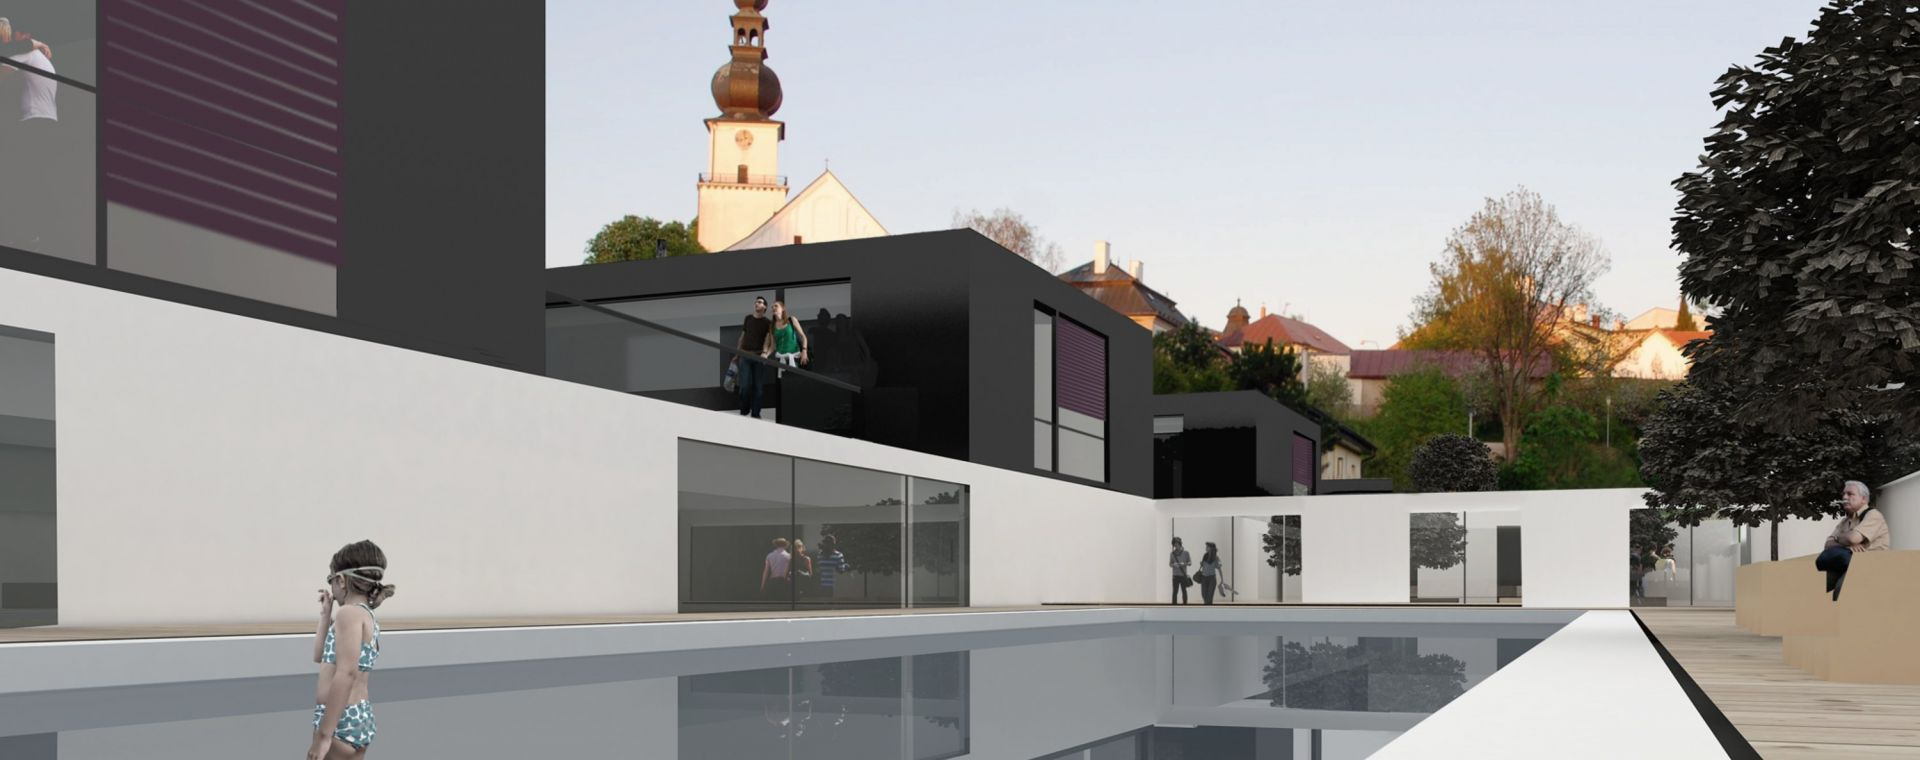 The city spa and wellness Žďár nad Sázavou, concept, 2012, CZ